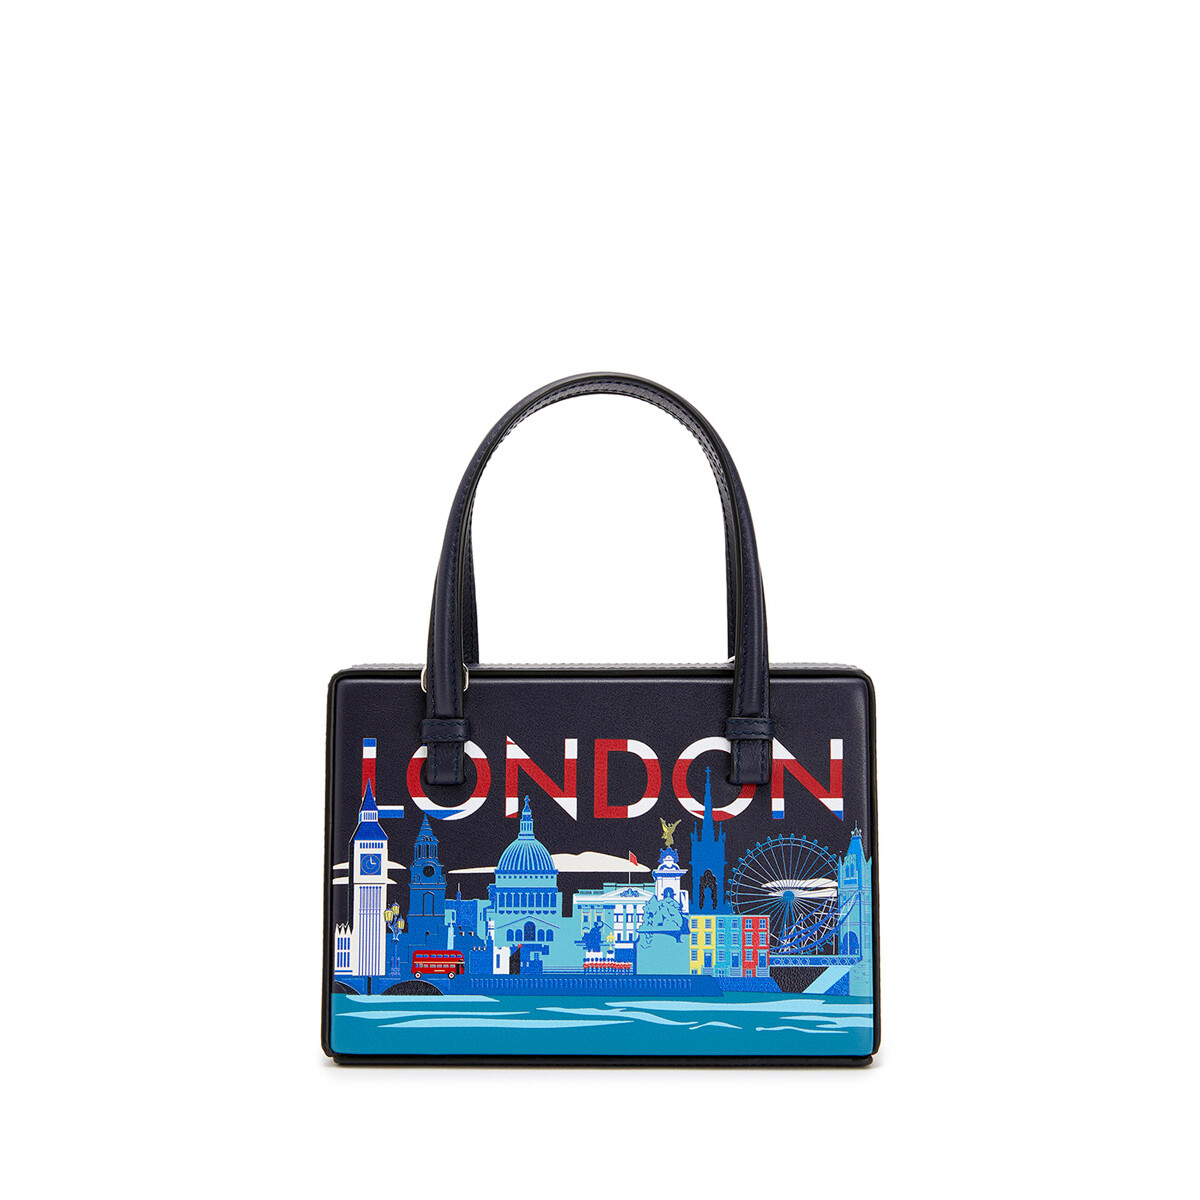 LOEWE Bolso Postal London Pequeño Azul Medianoche front